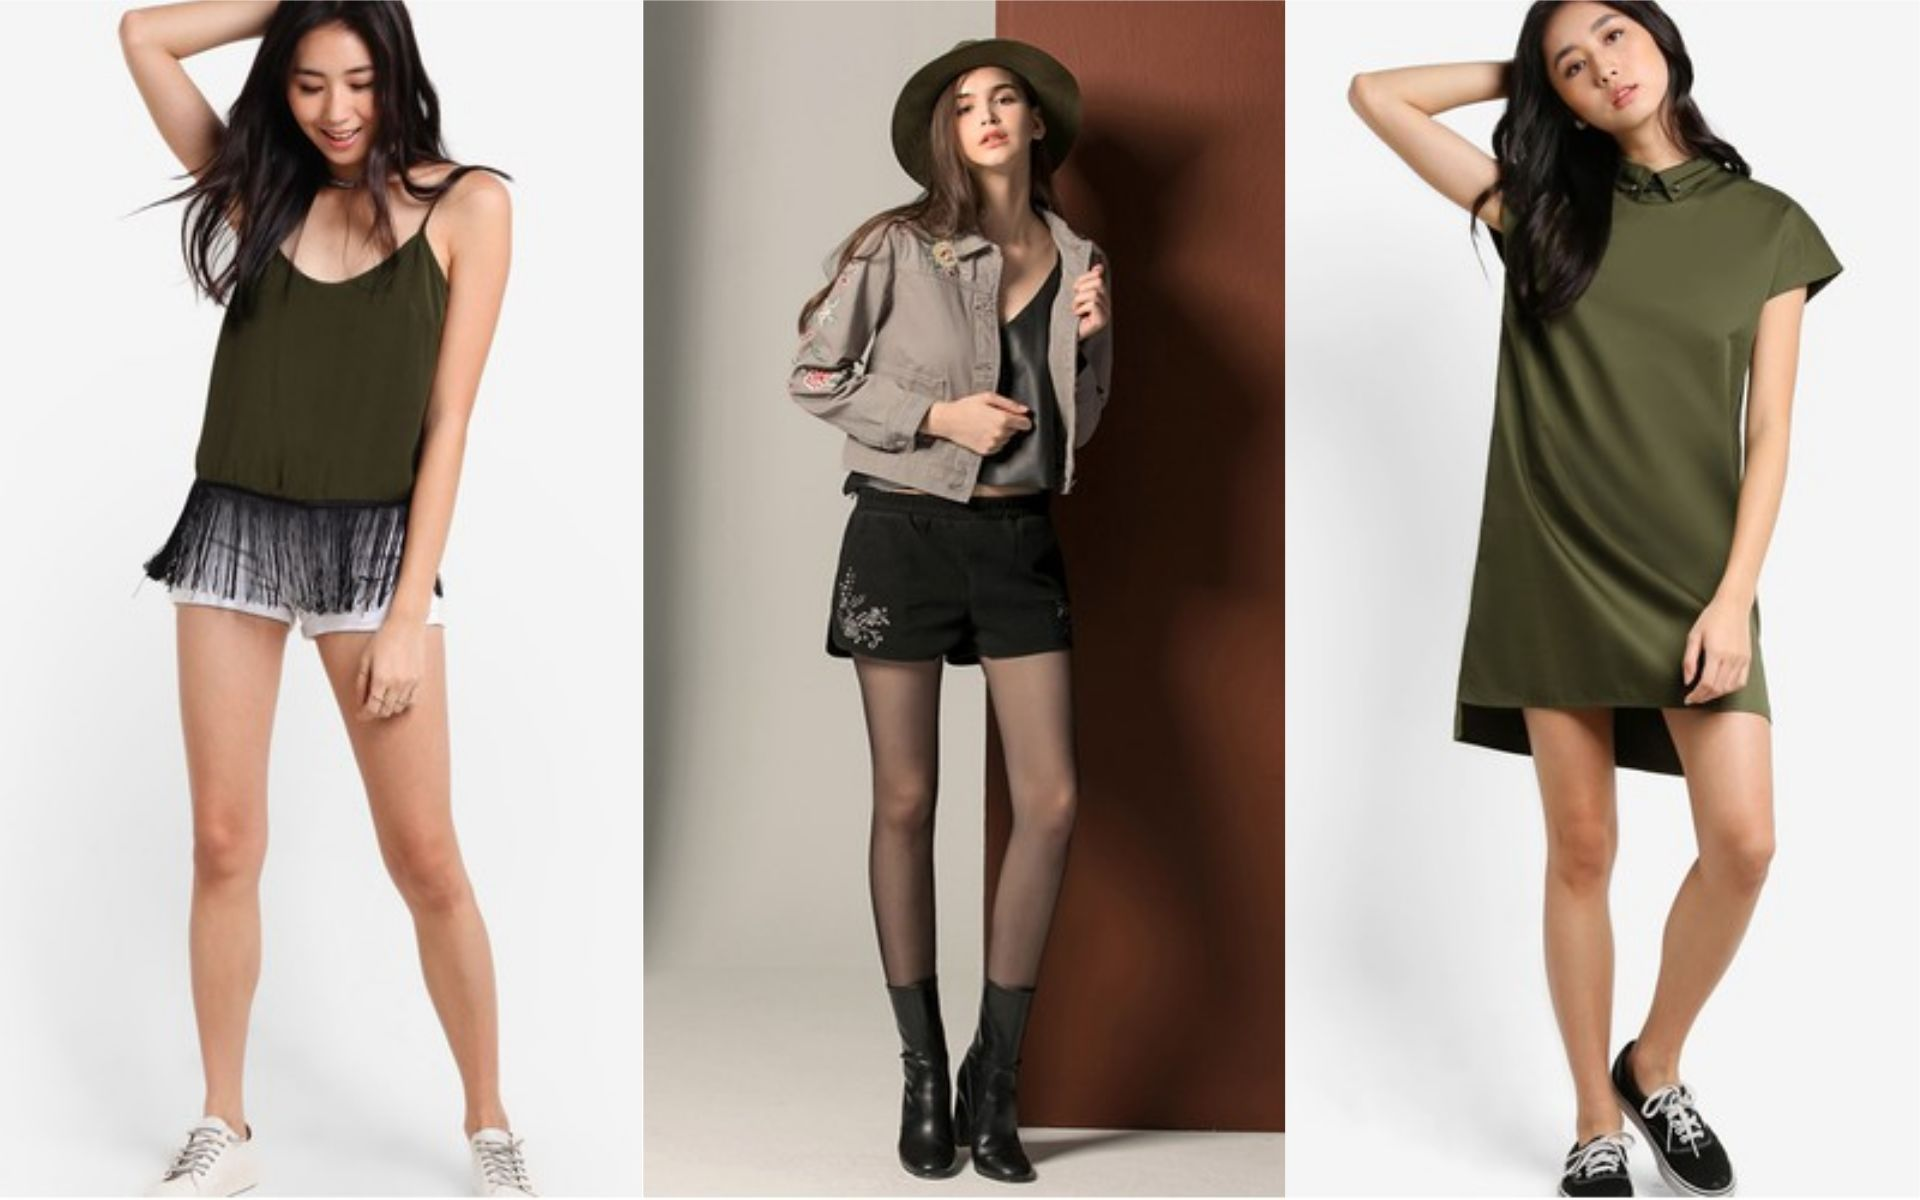 Army Tone Outfit